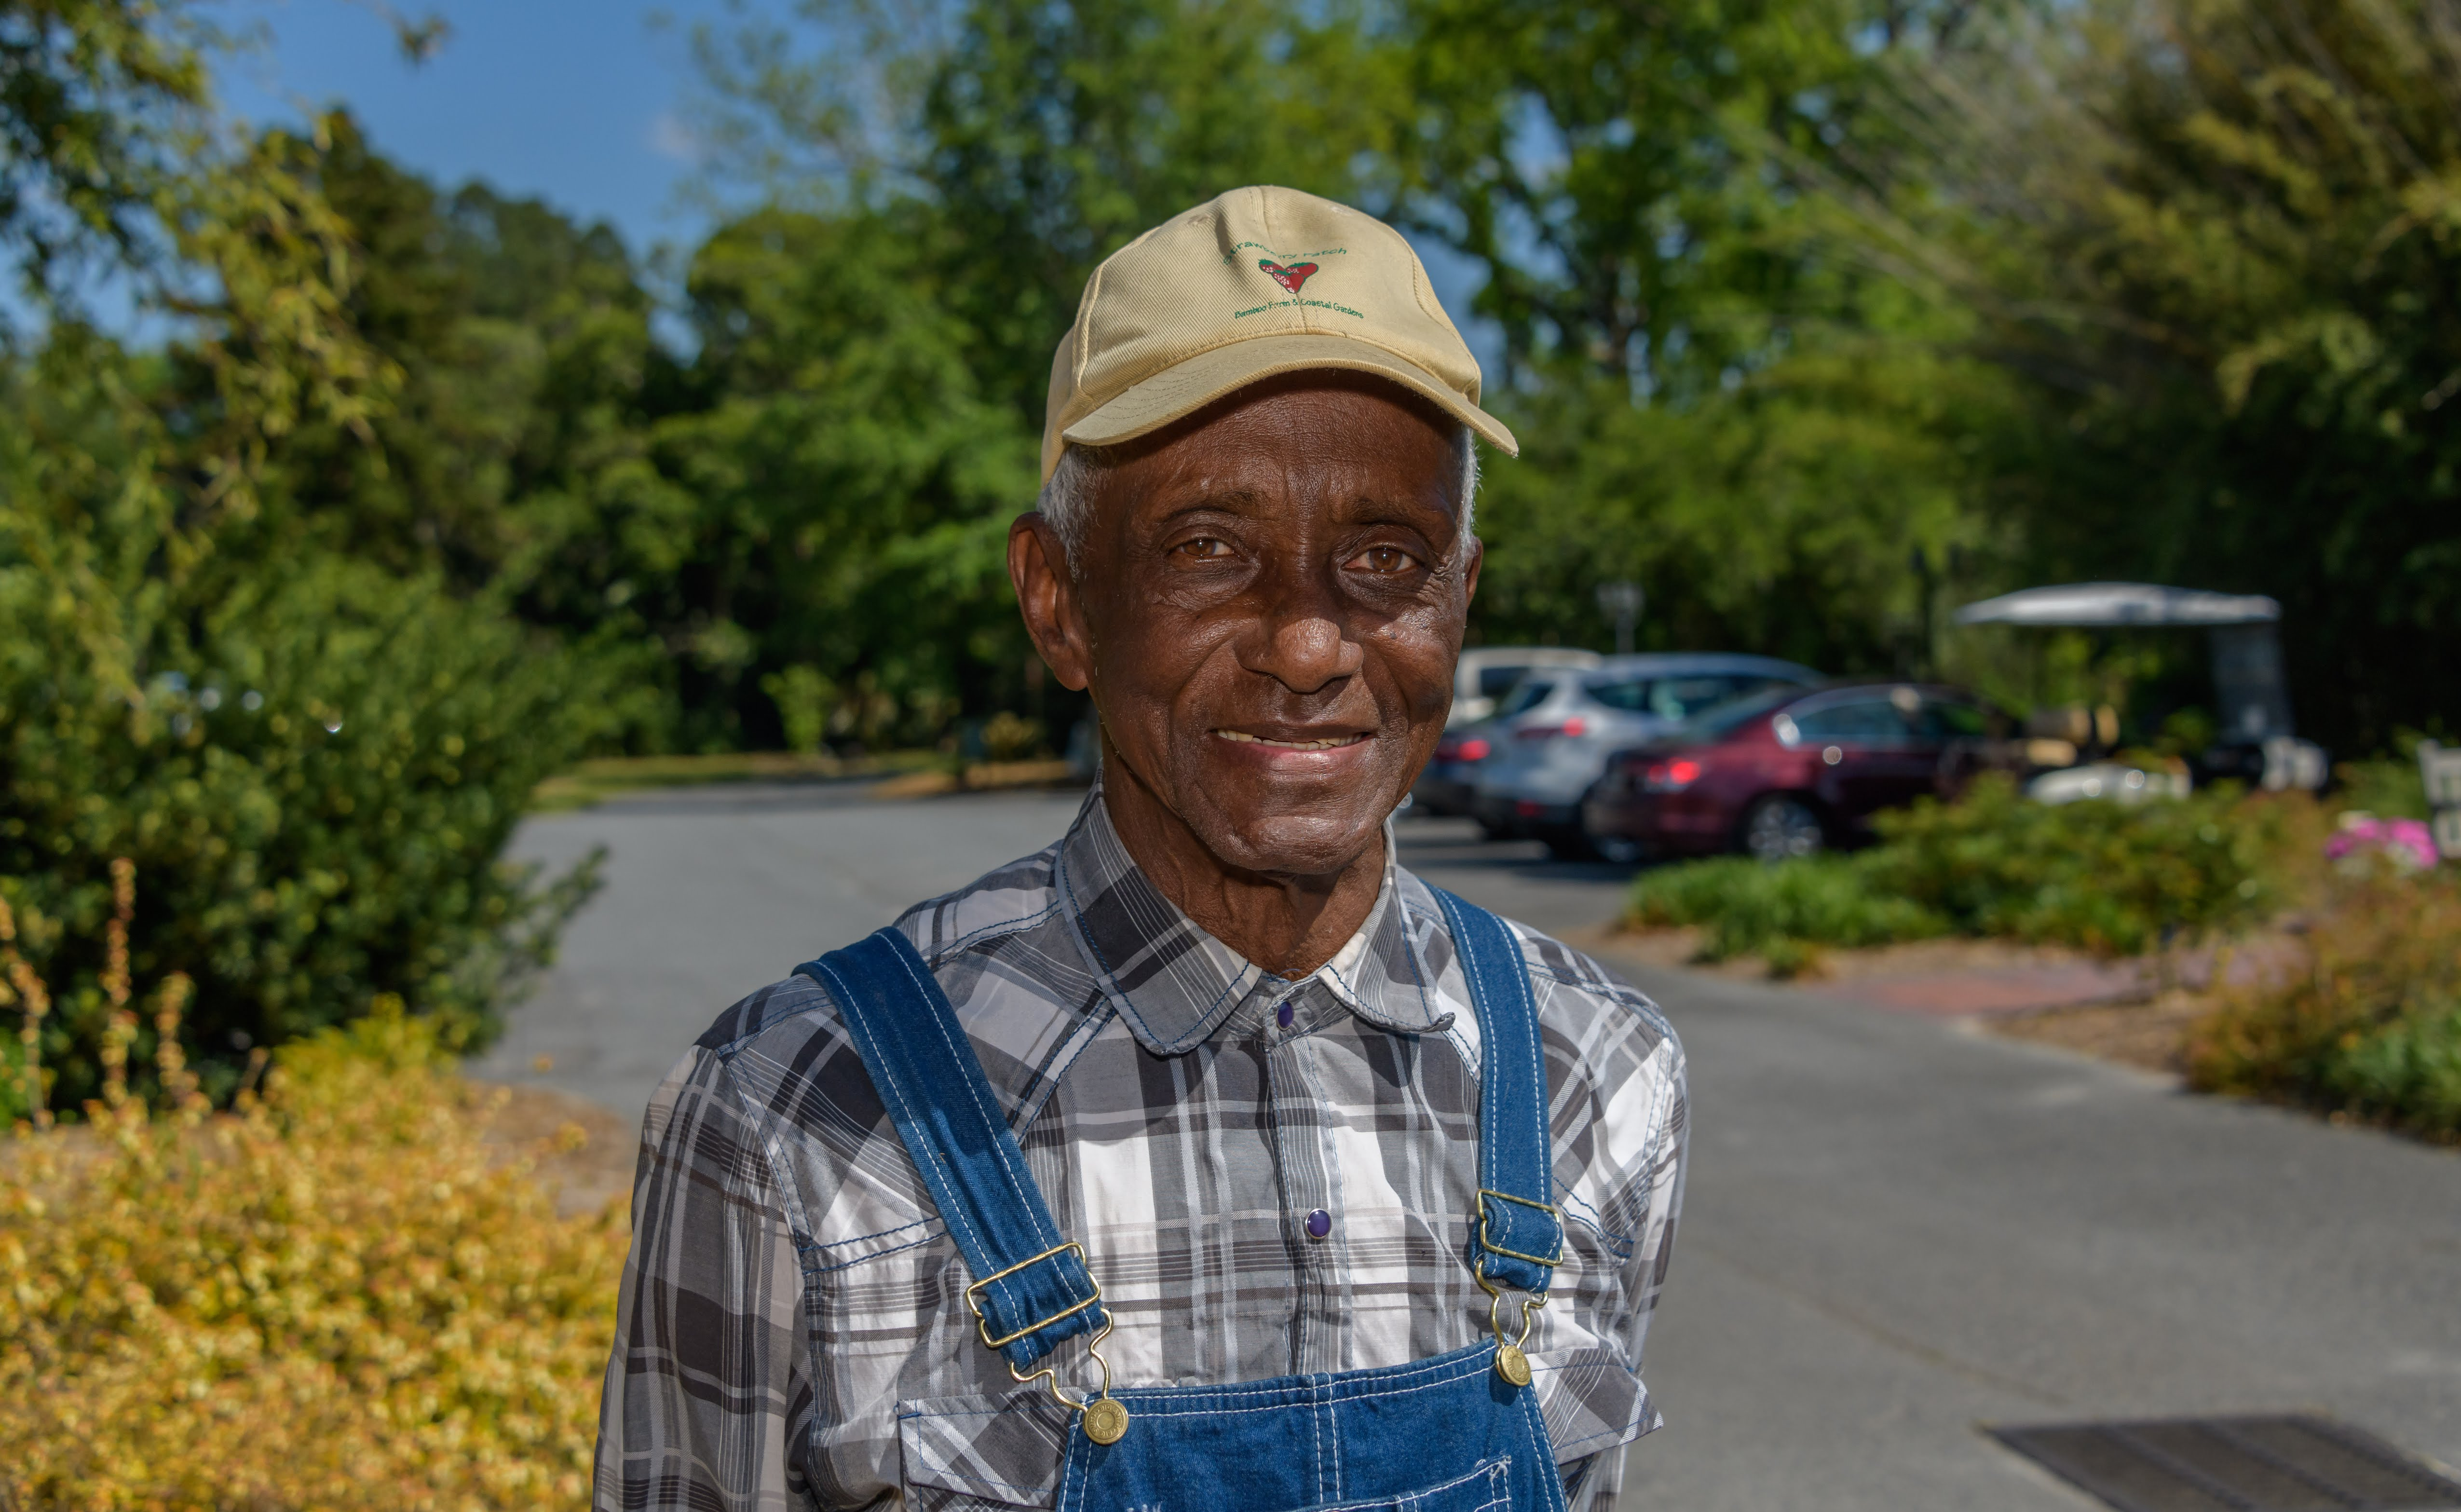 At 75, Frank Williams is retired from his position as the groundskeeper for the University of Georgia Coastal Georgia Botanical Garden at the Historic Bamboo Farm in Savannah, Georgia. But he still works there three days a week and he hasn't slowed down a bit.